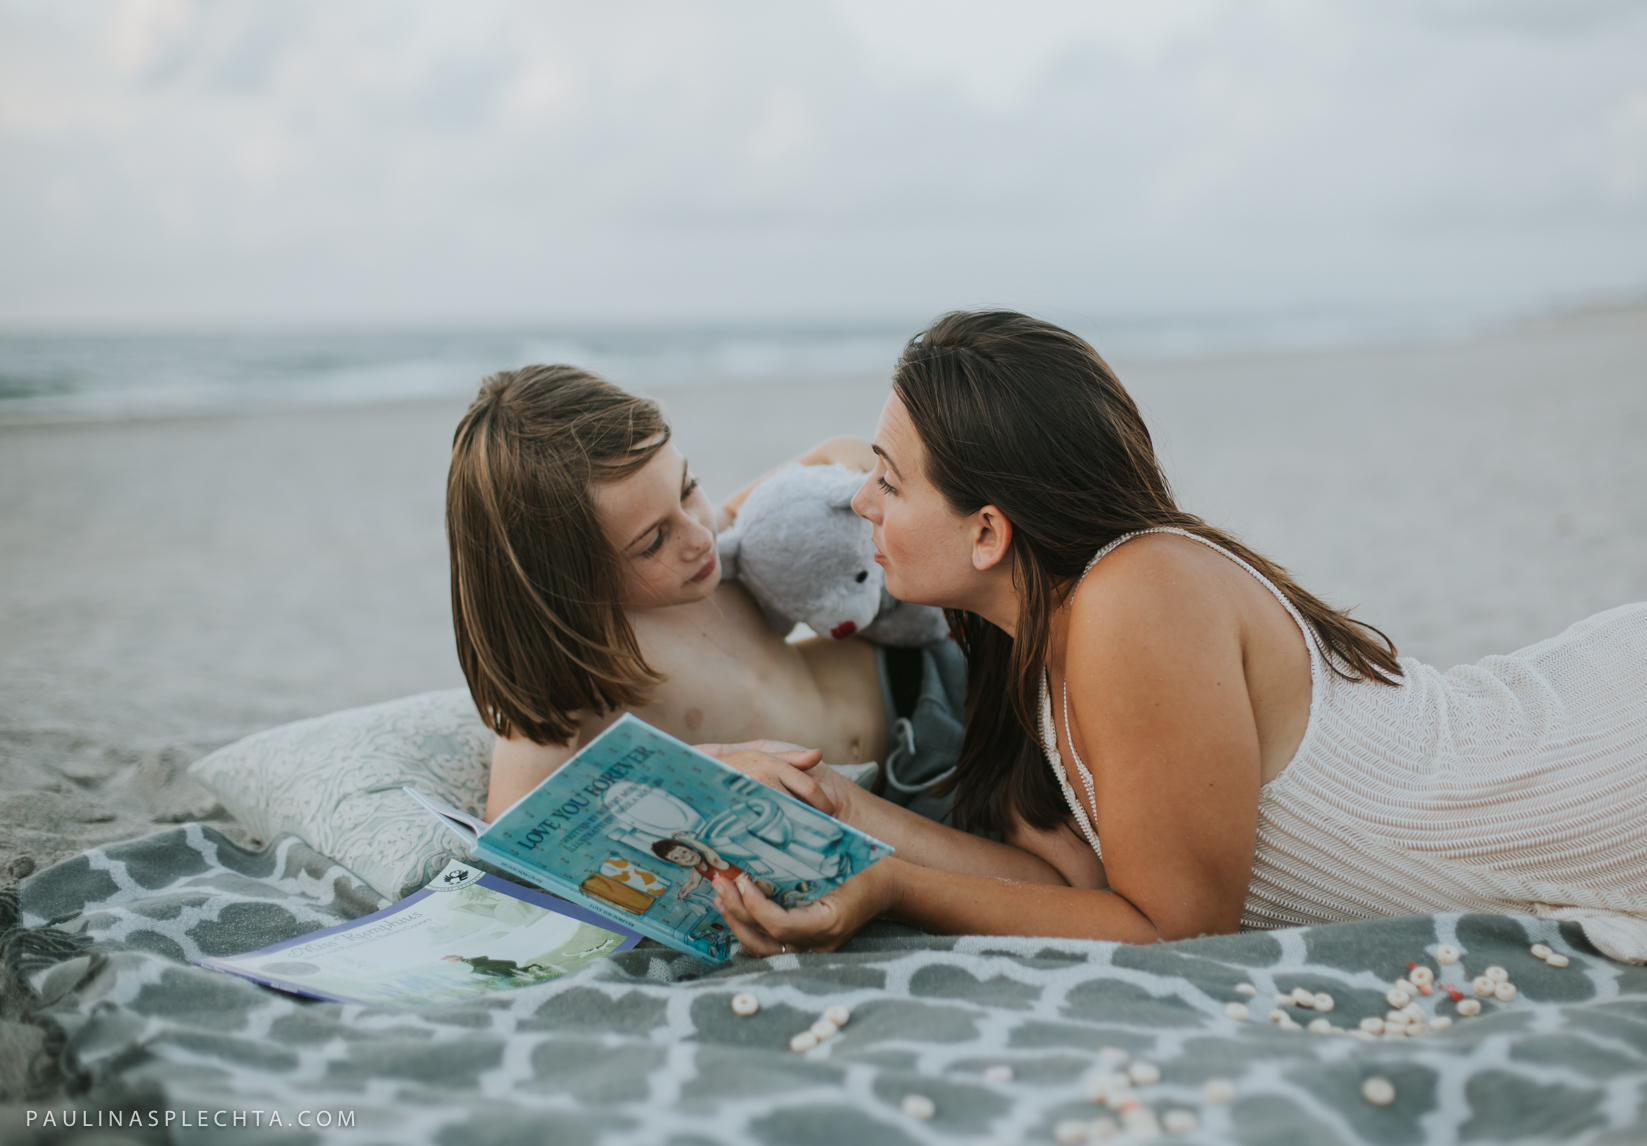 boca-raton-family-photographer-delray-beach-family-session-birthday-newborn-baby-park-session-photography-18.jpg